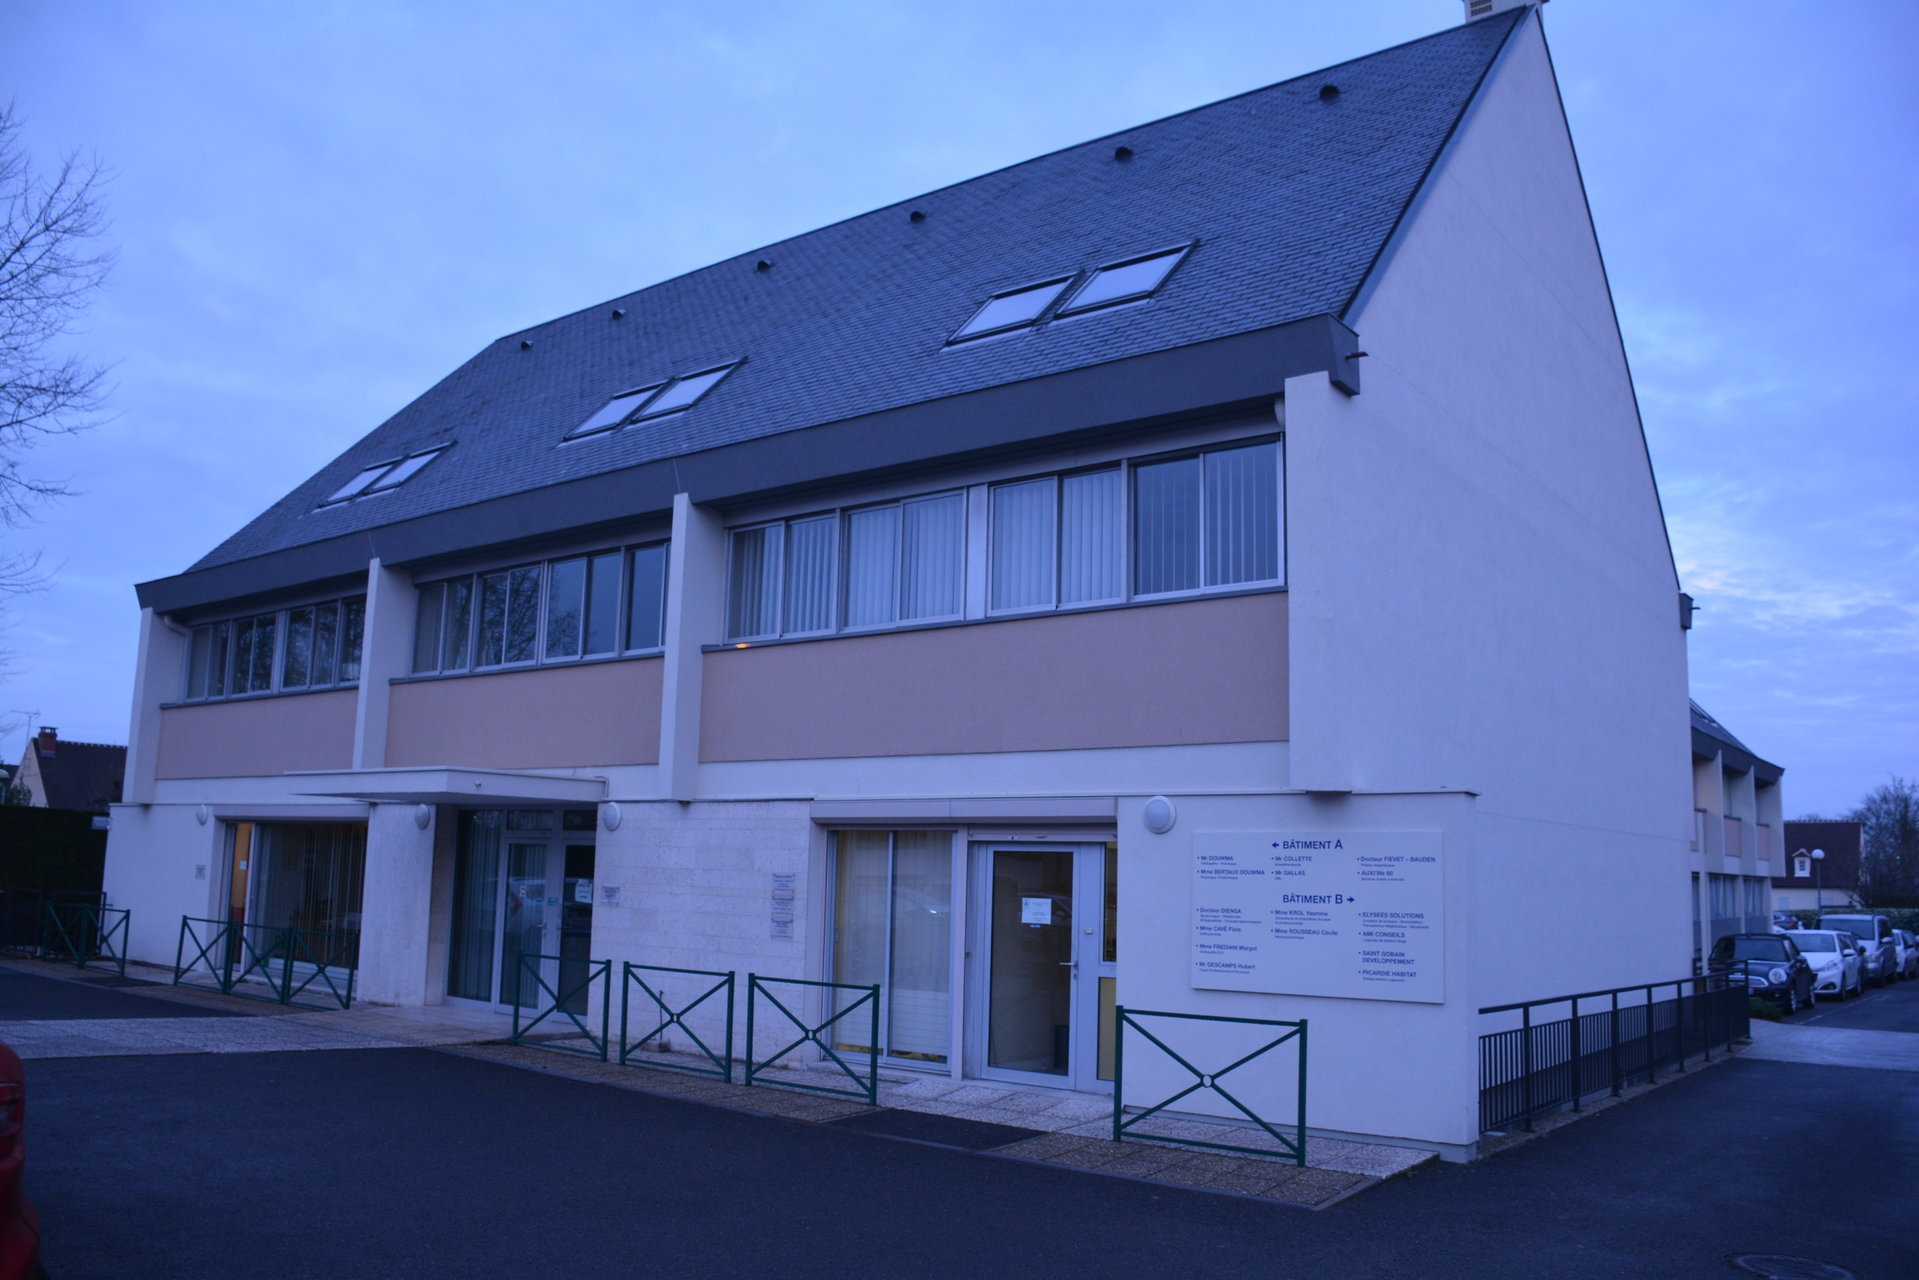 LOCAL PROFESSIONNEL SENLIS 80 m2